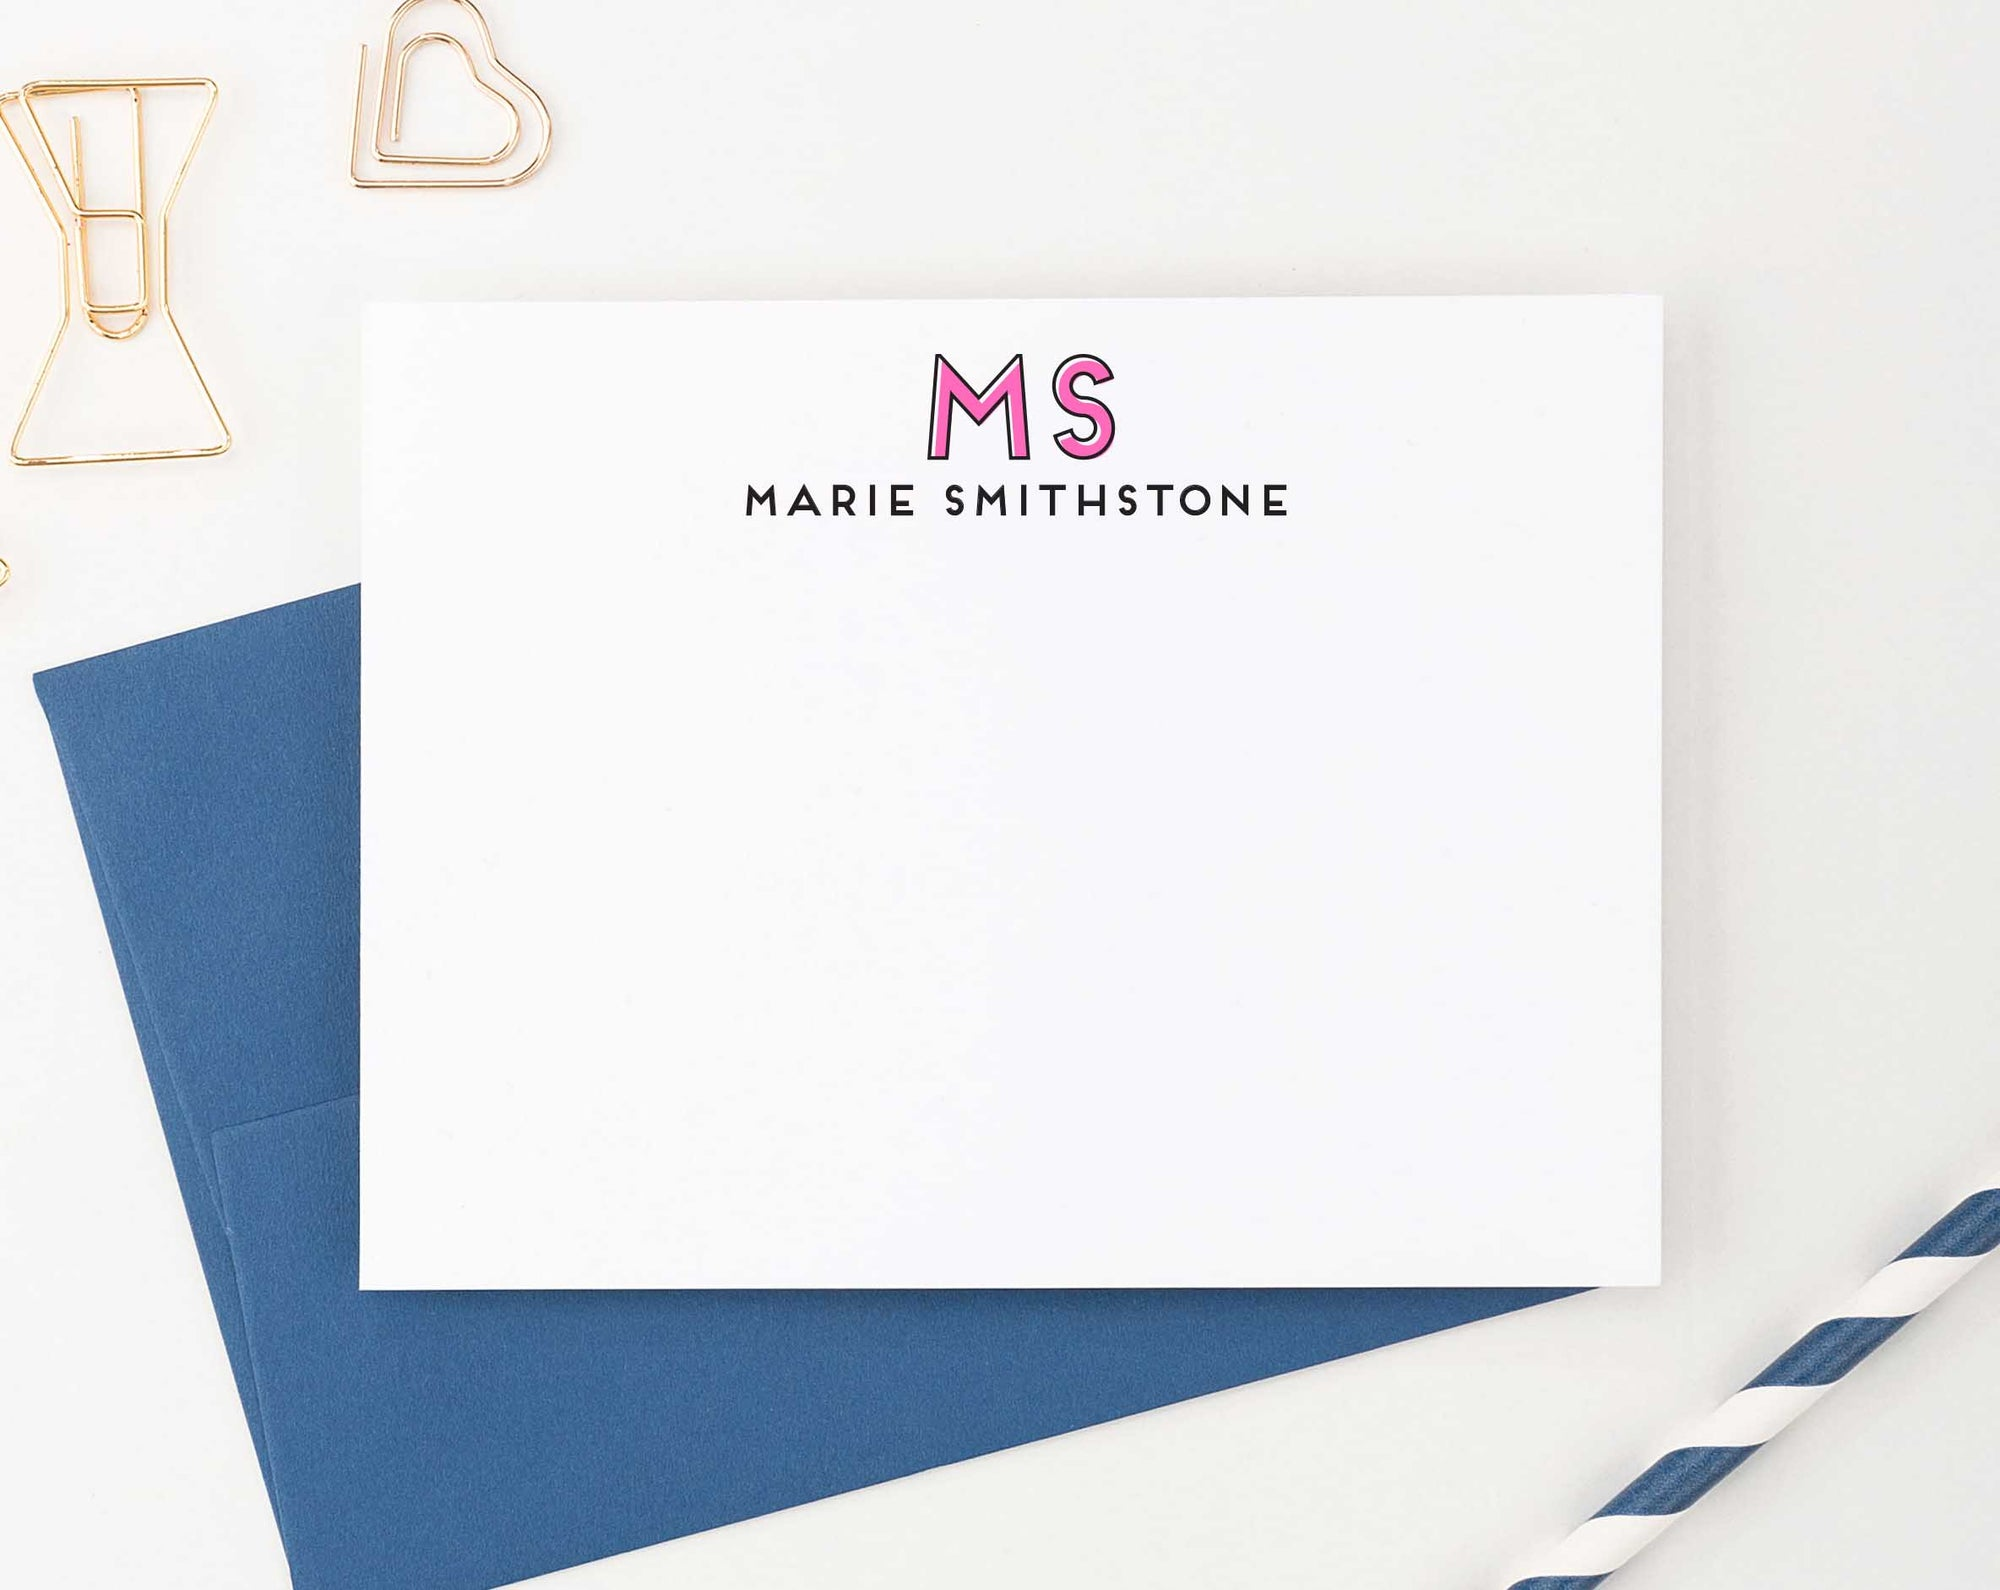 MS036 personalized cute 2 initial monogramed stationary for adults women men elegant classic